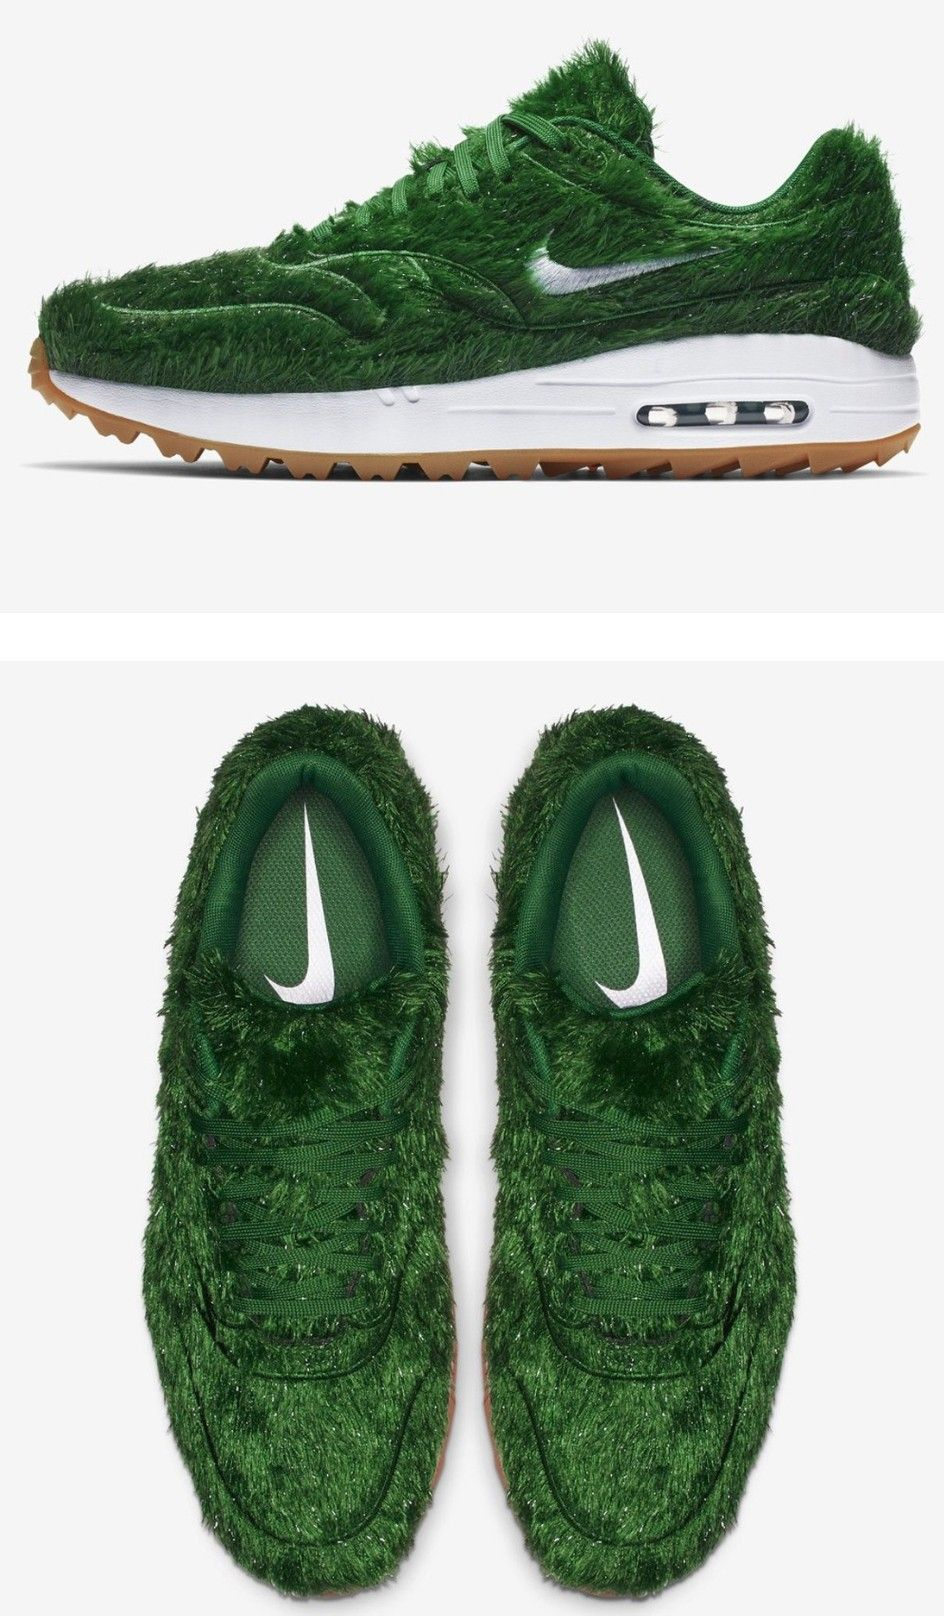 new product 579be 2cba0 Nike Unveils The Air Max 1 Golf Shoe With Green Grass Uppers ⛳